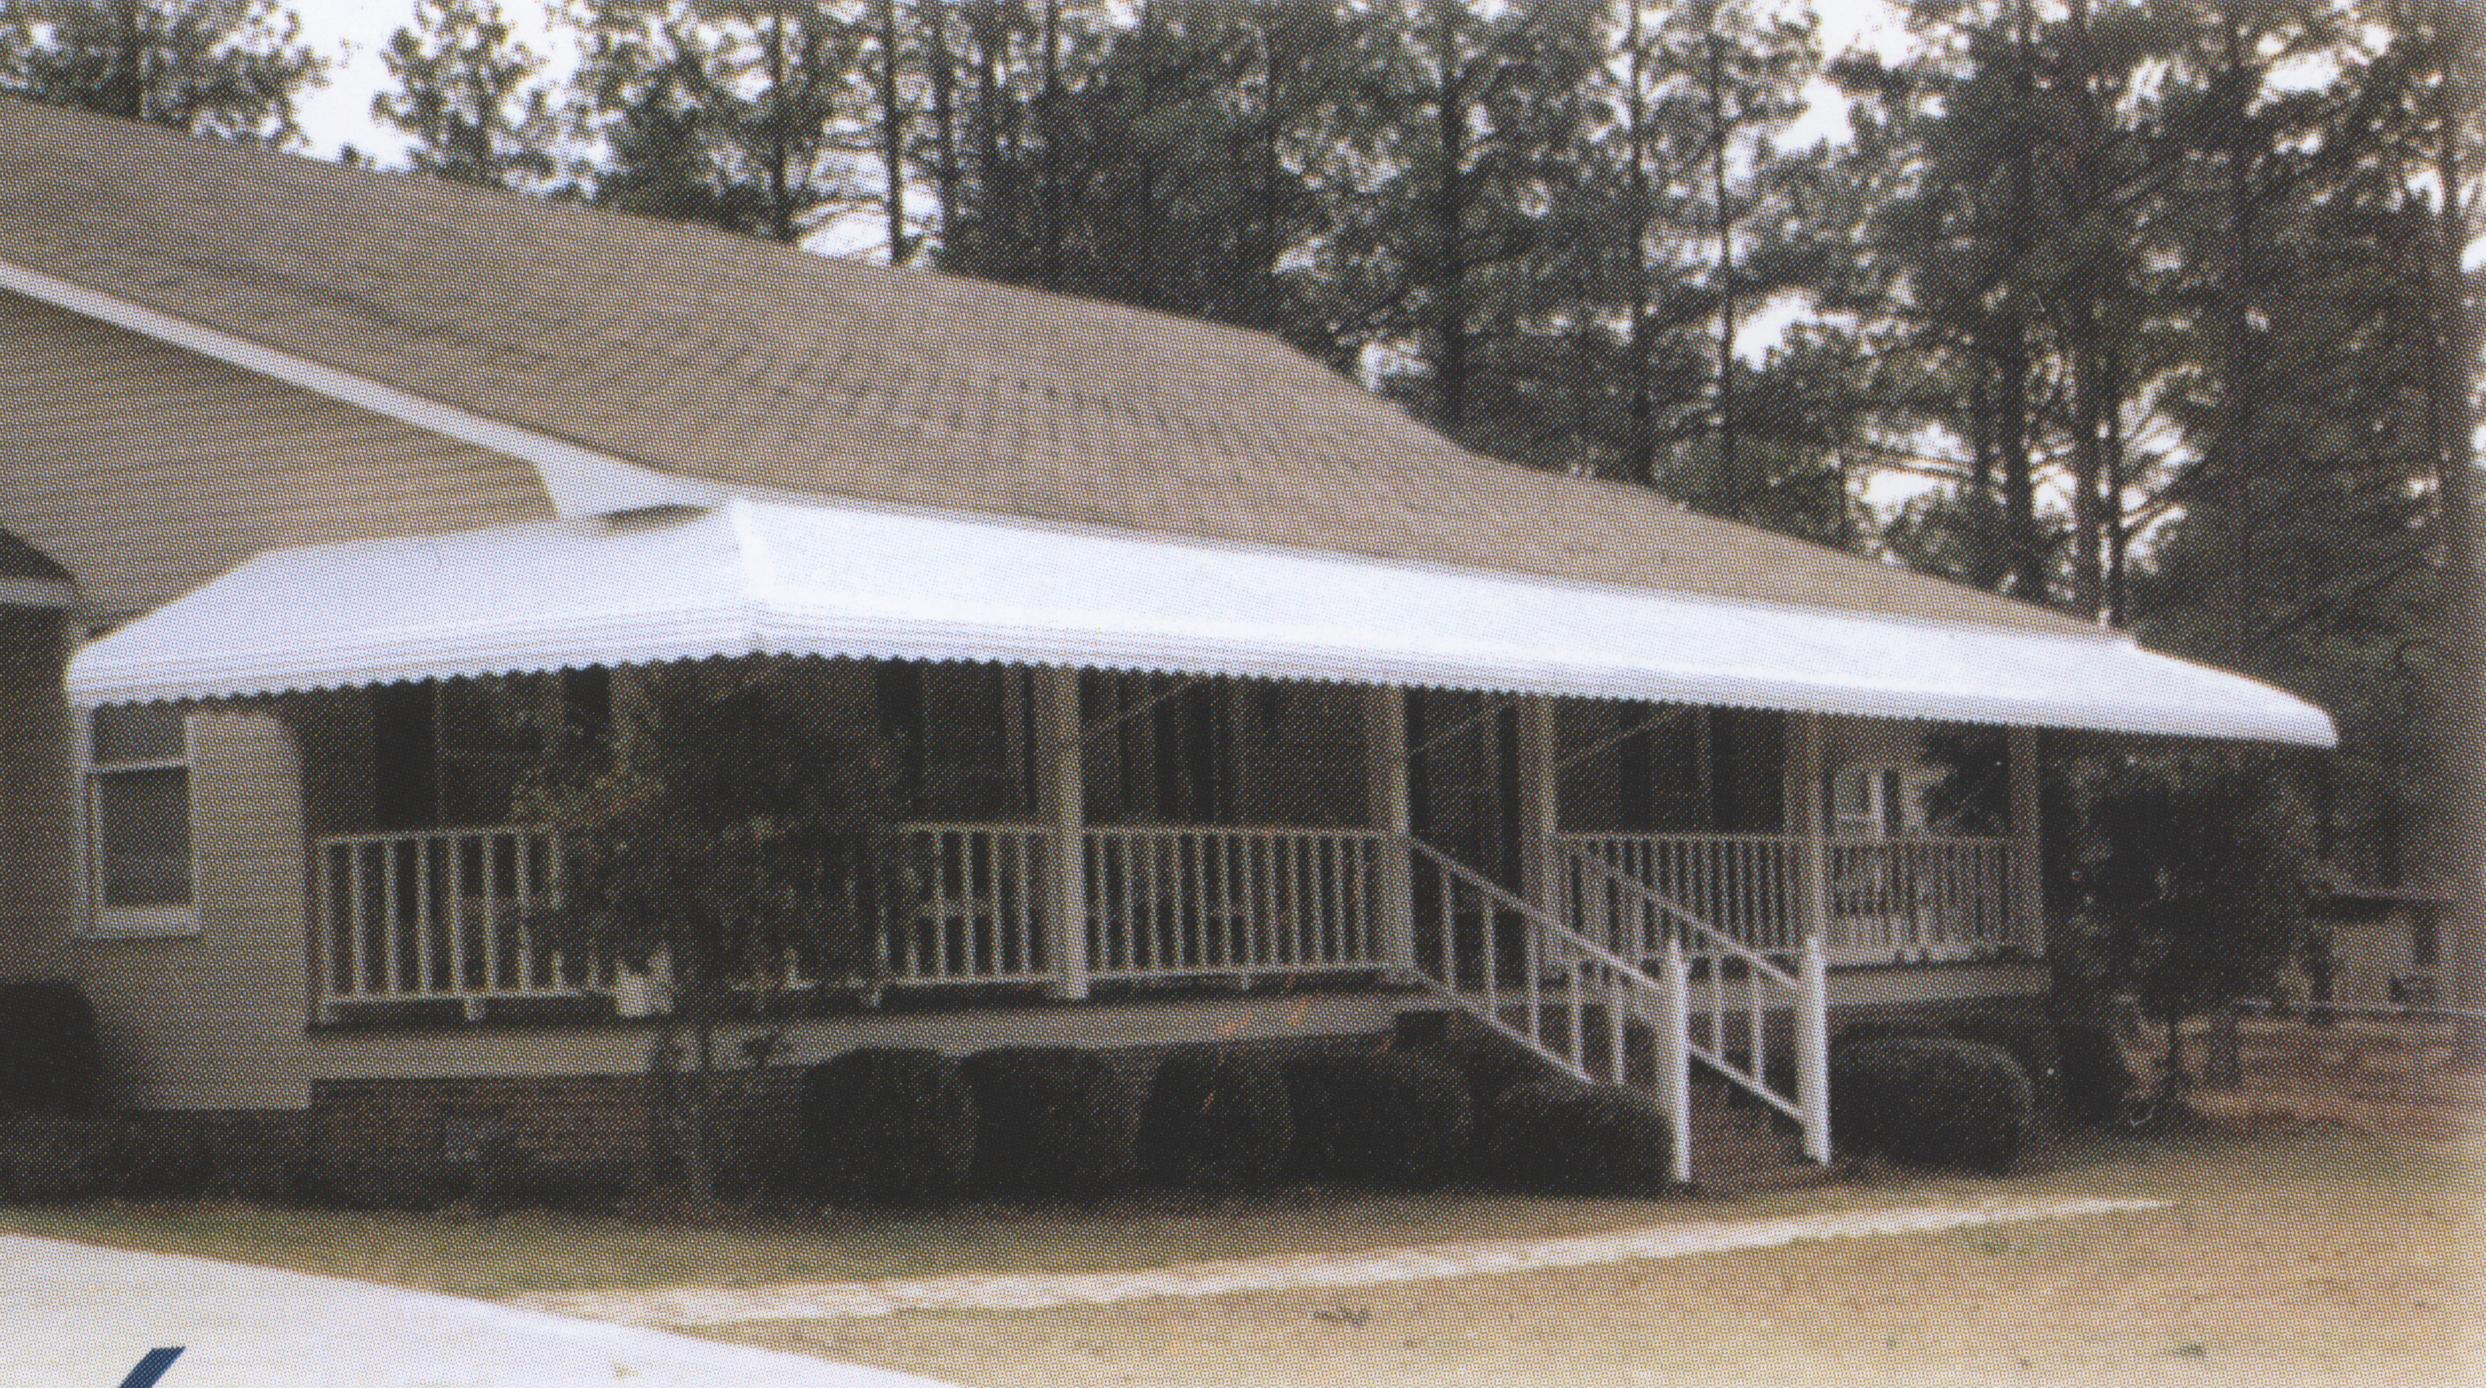 Patio Covers - Do It Yourself Patio Cover Kits, Alumawood Patio